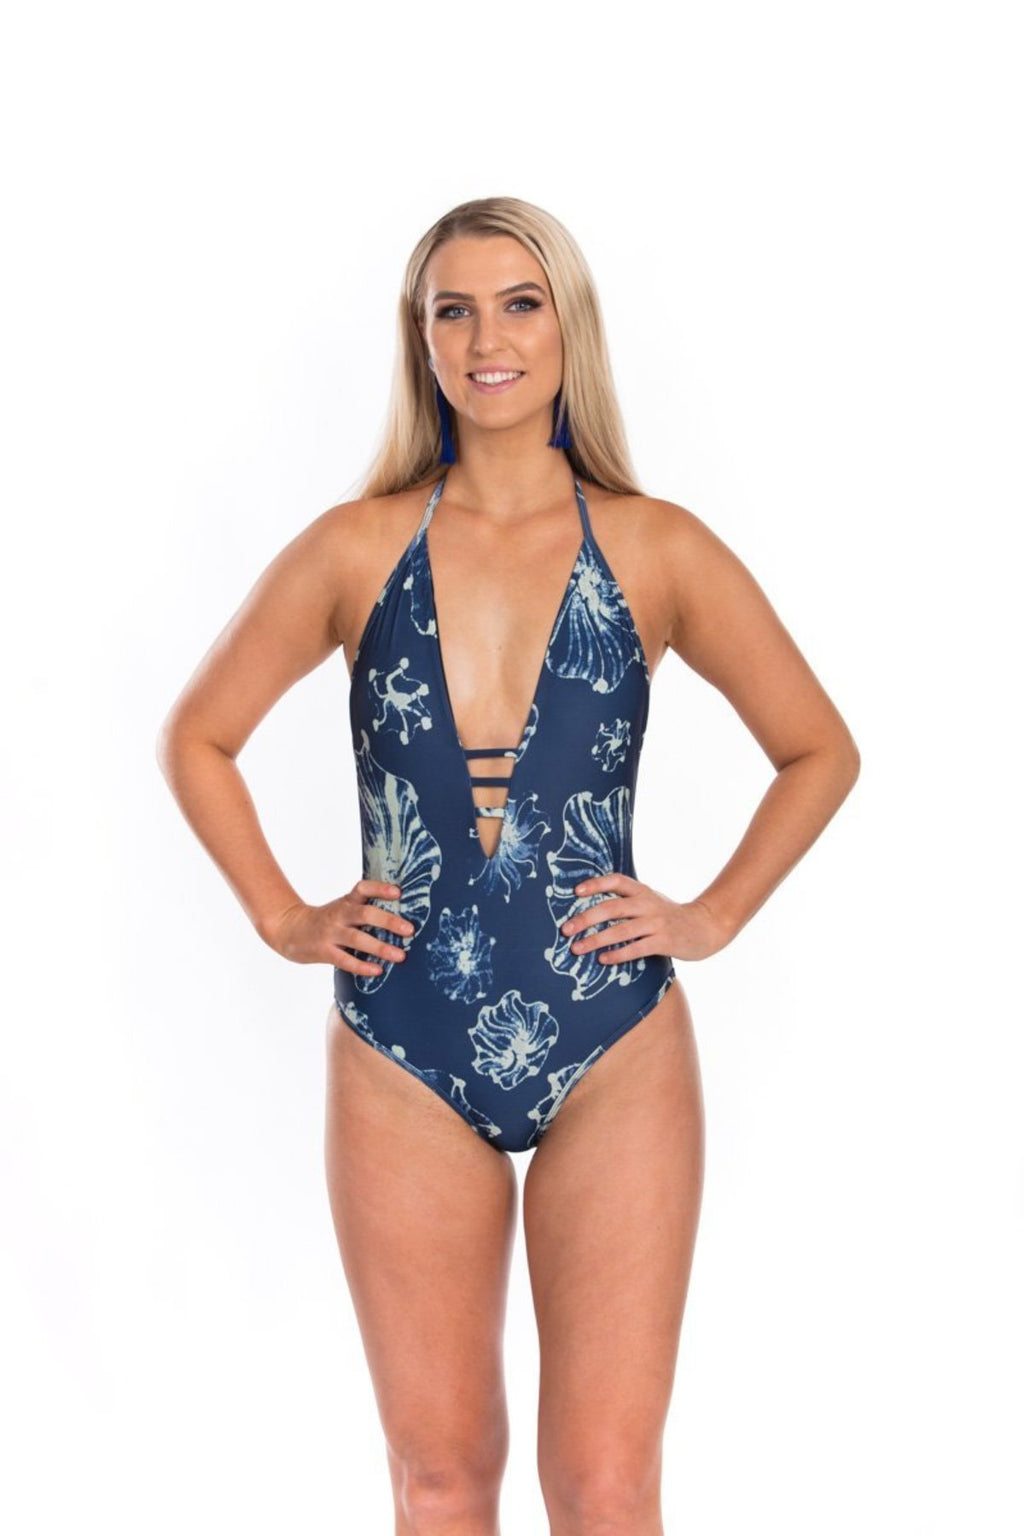 Rachel One Piece Swimwear Ethical Sustainable Vegan Organic Australian fashion womens clothes